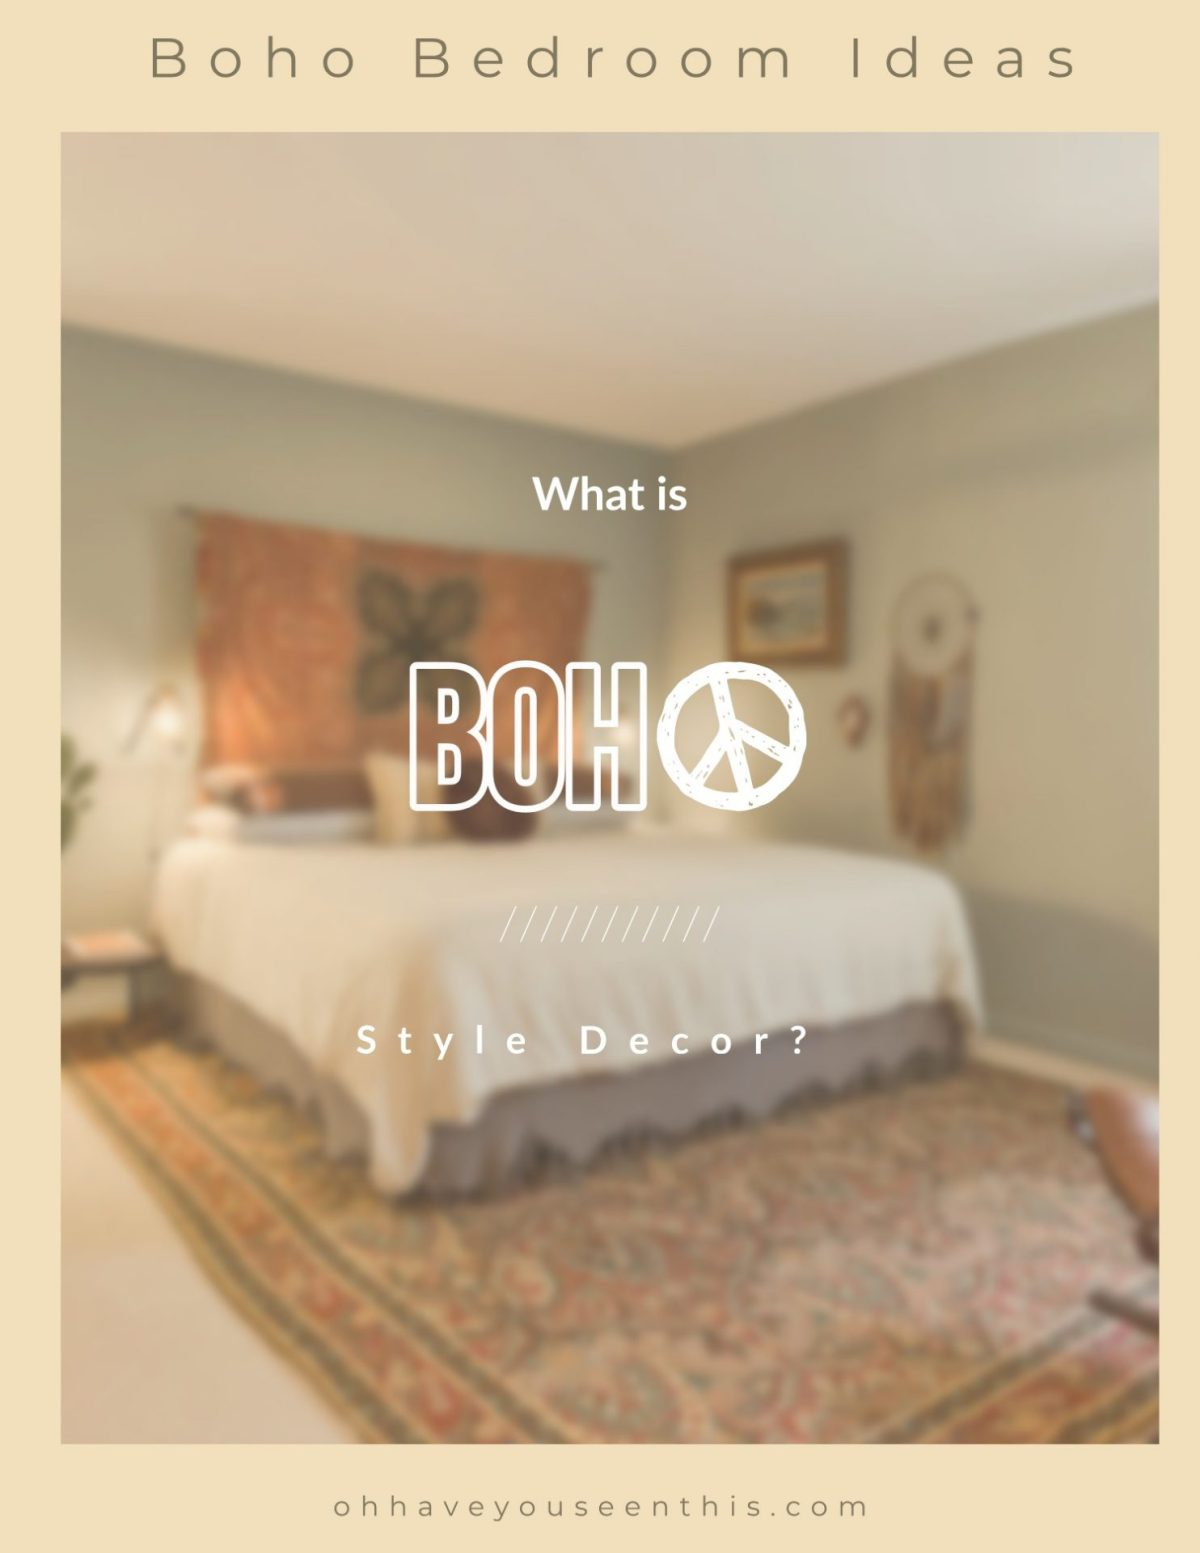 What is boho style decor